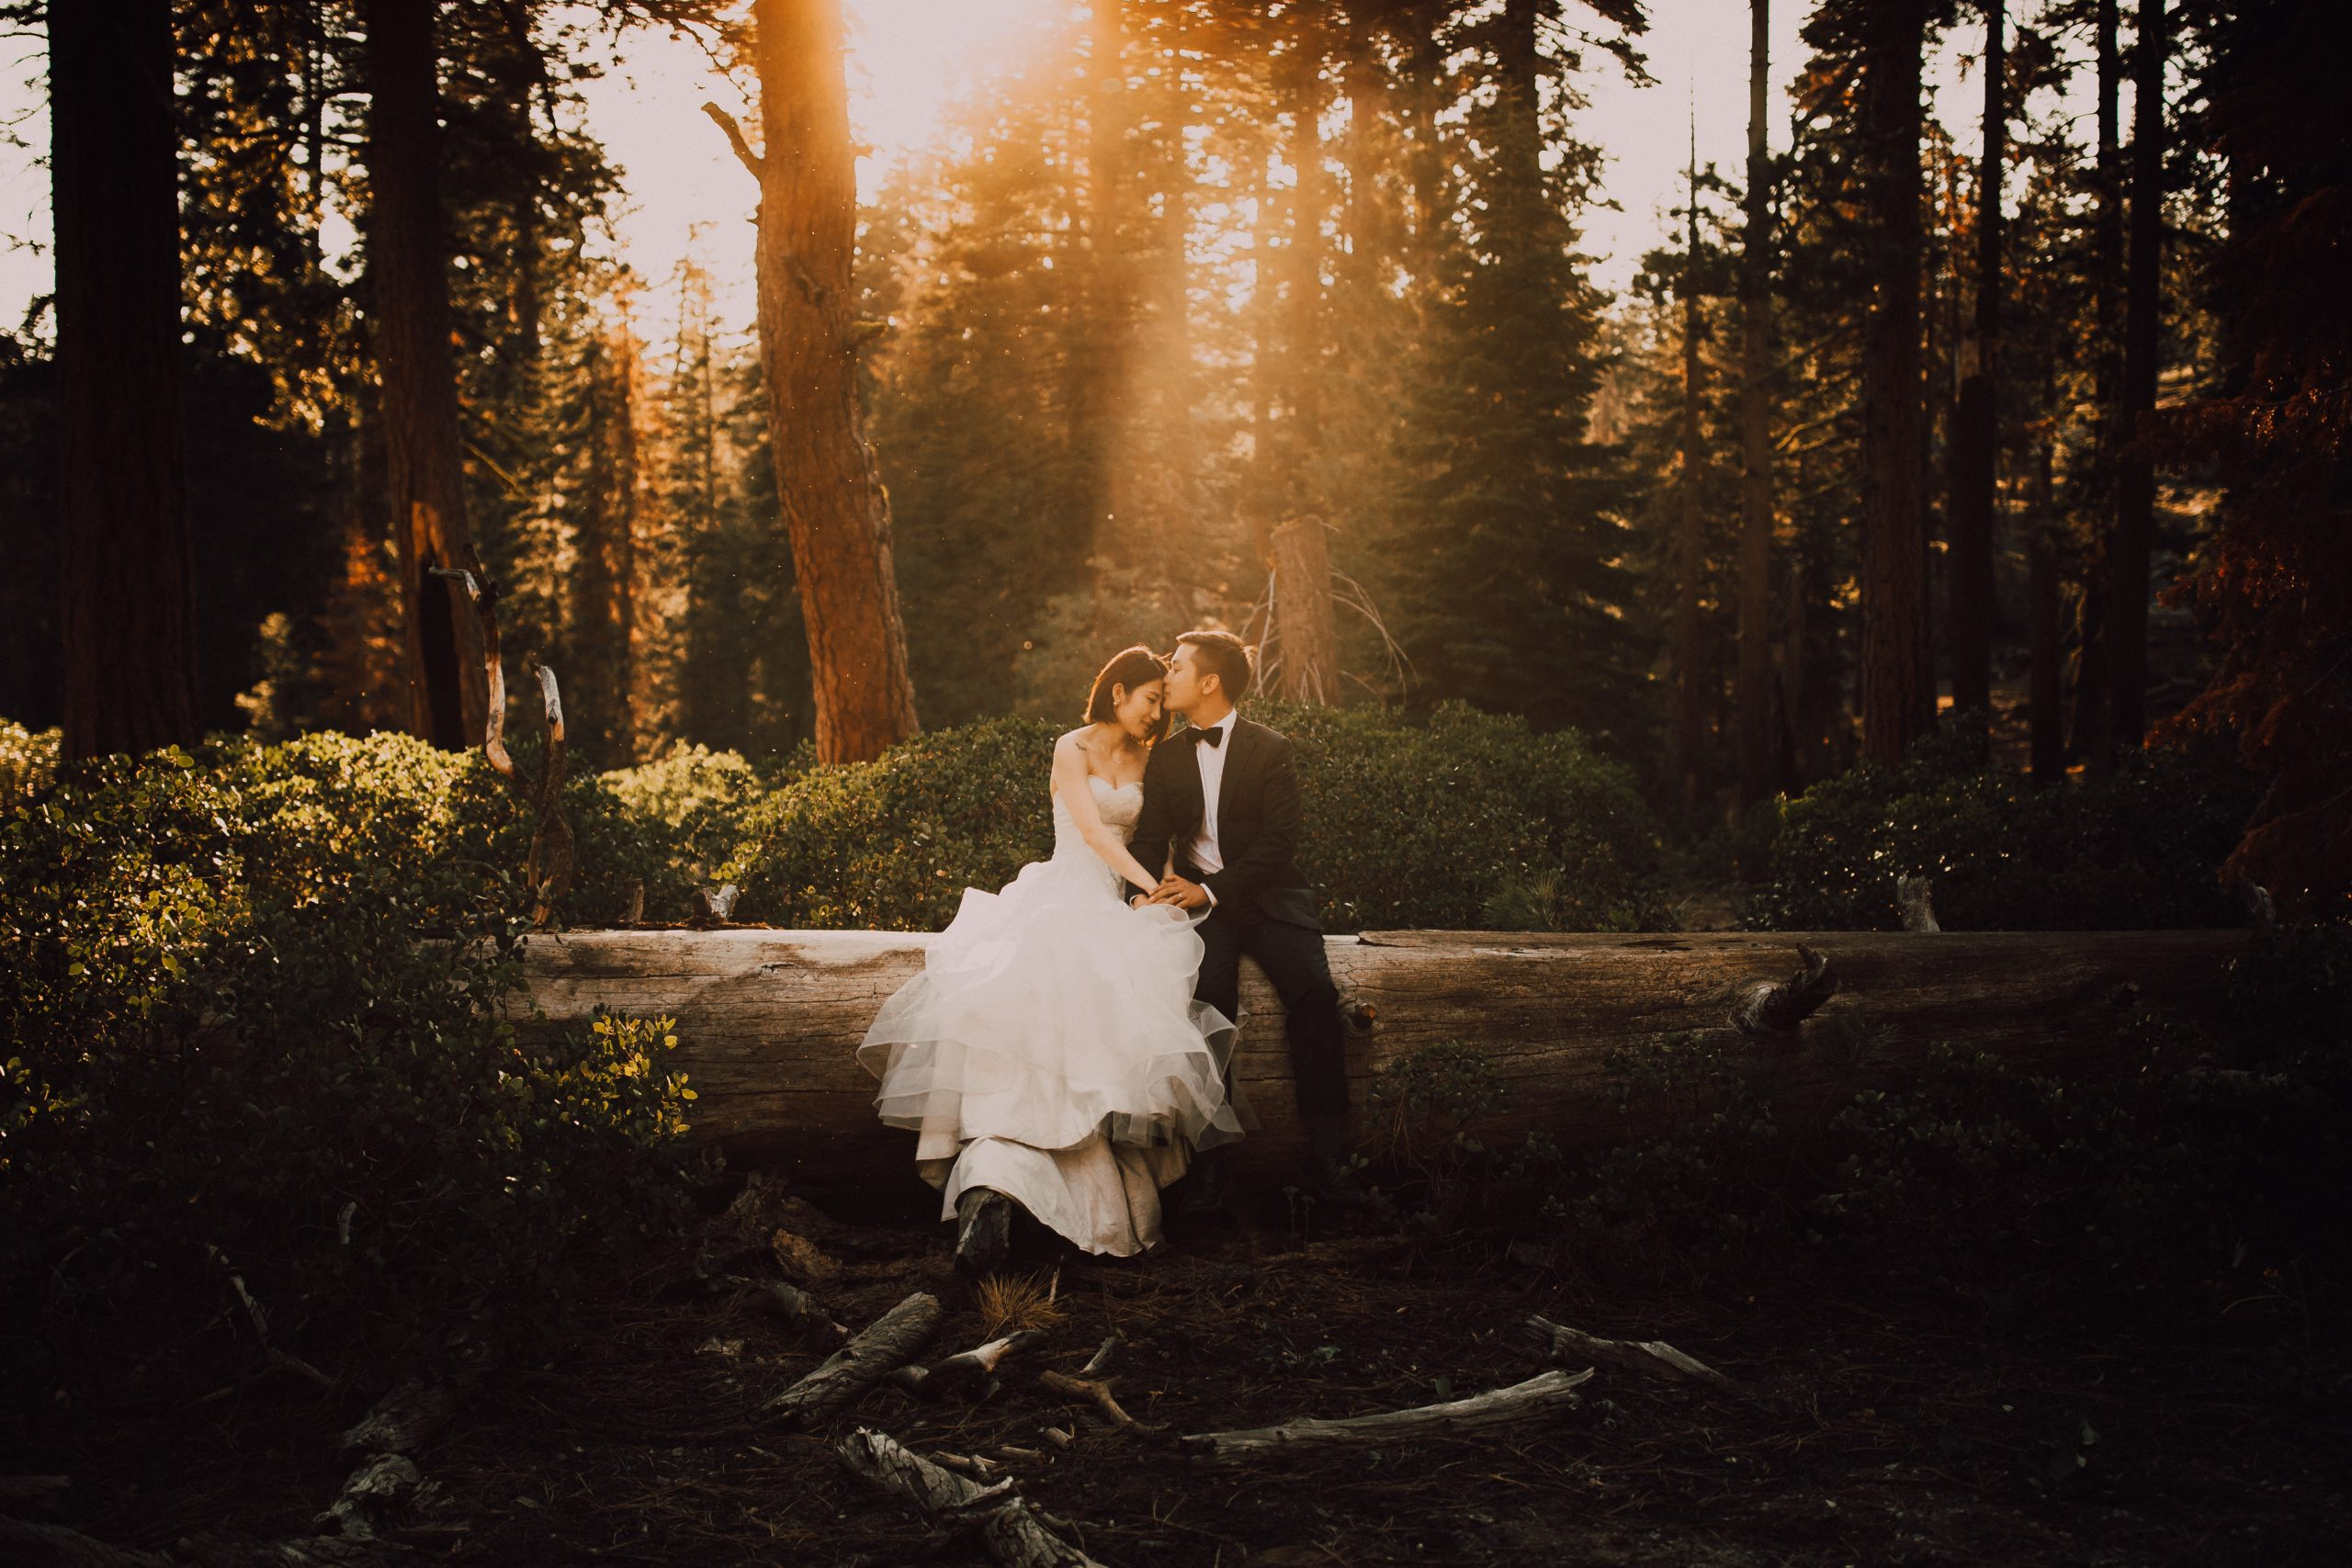 Wedding Lightroom Presets - C & A Presets by Cody & Allison